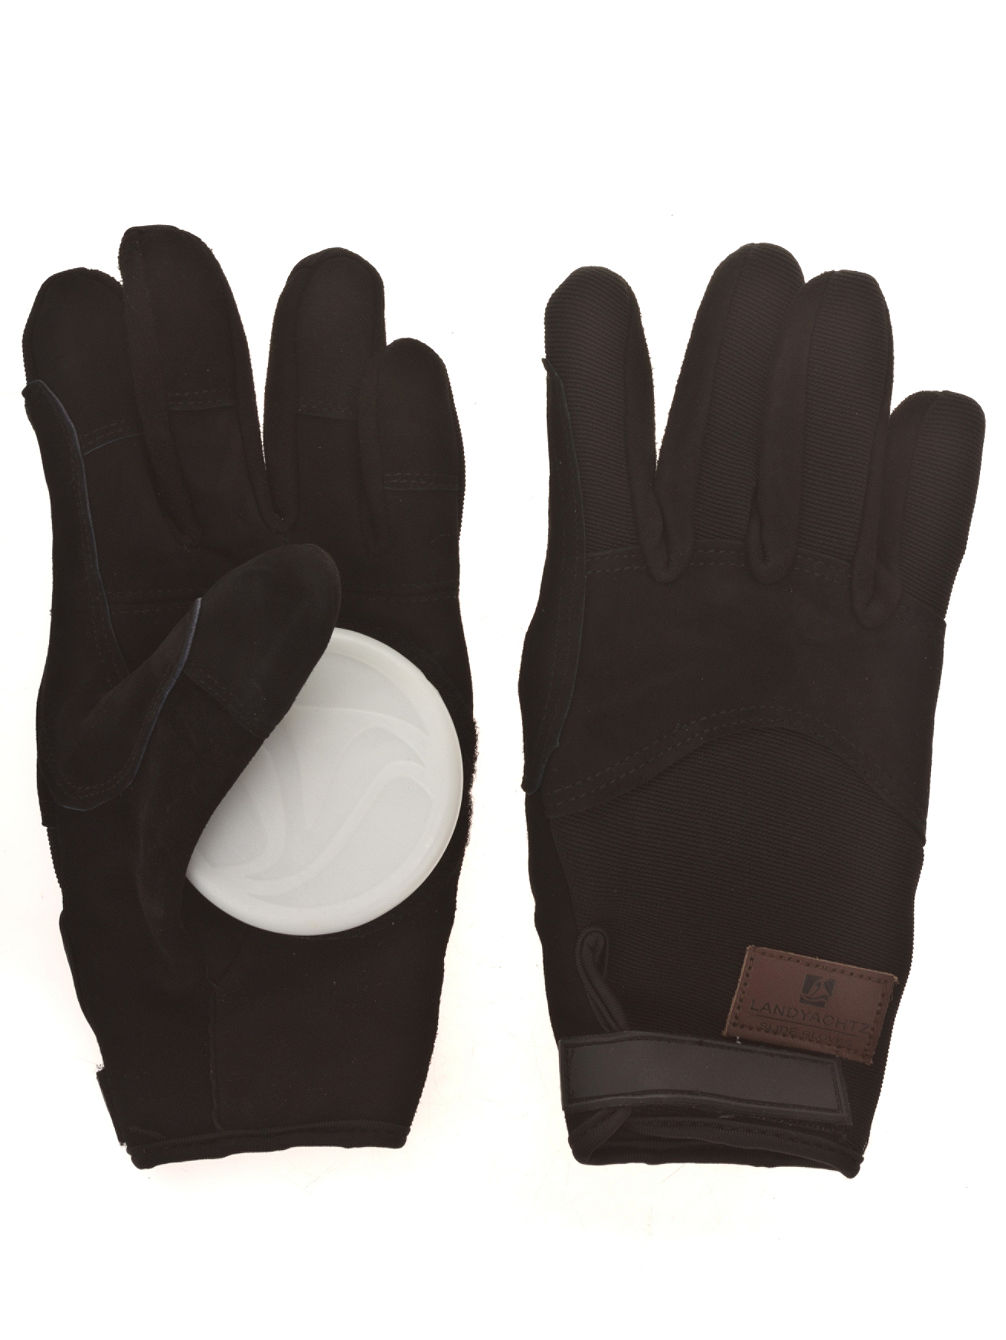 Freeride Slide Gloves